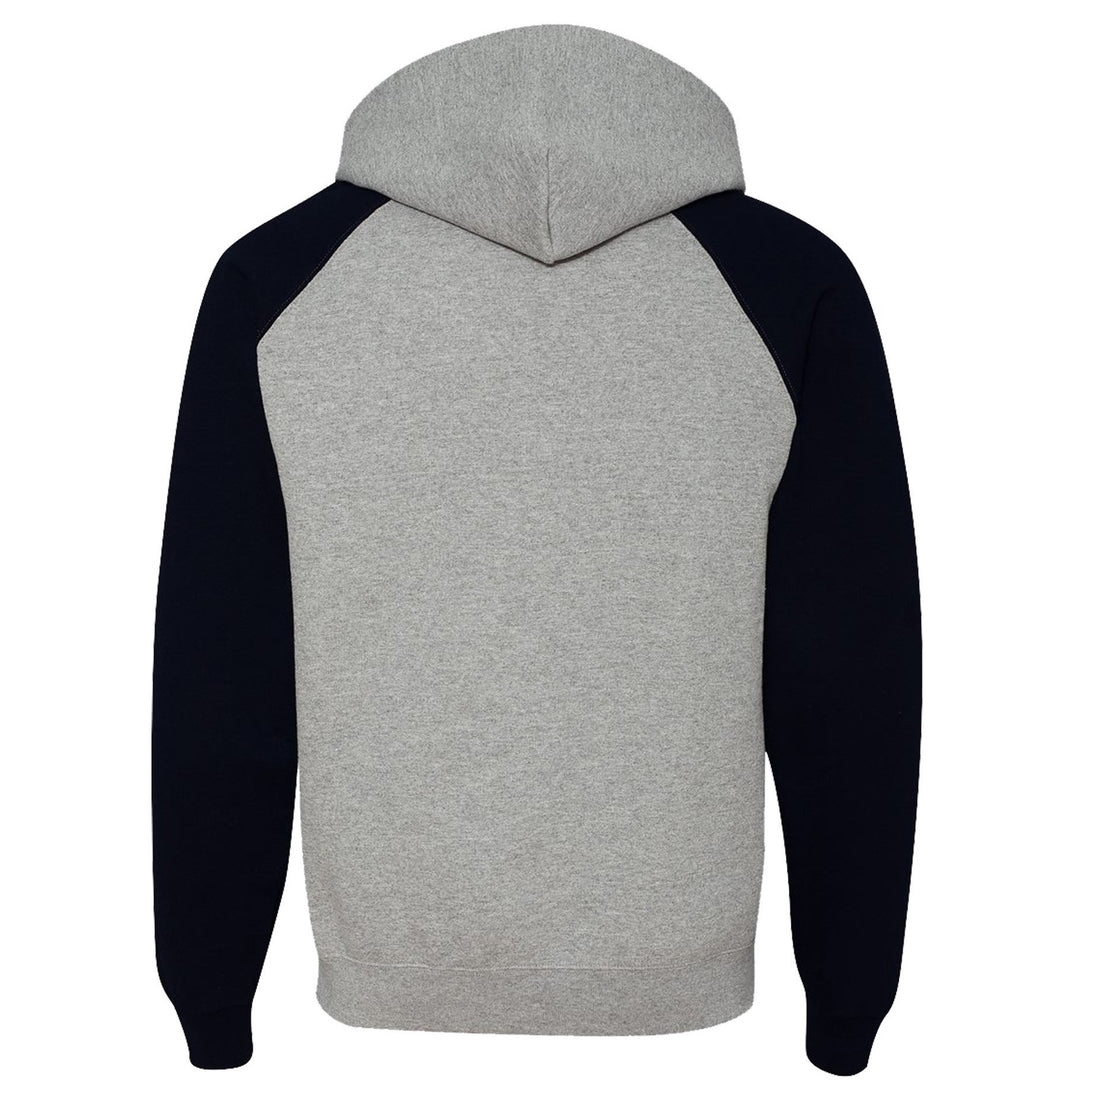 Marines Jerzees Raglan Hooded Sweatshirt With Phone Pocket